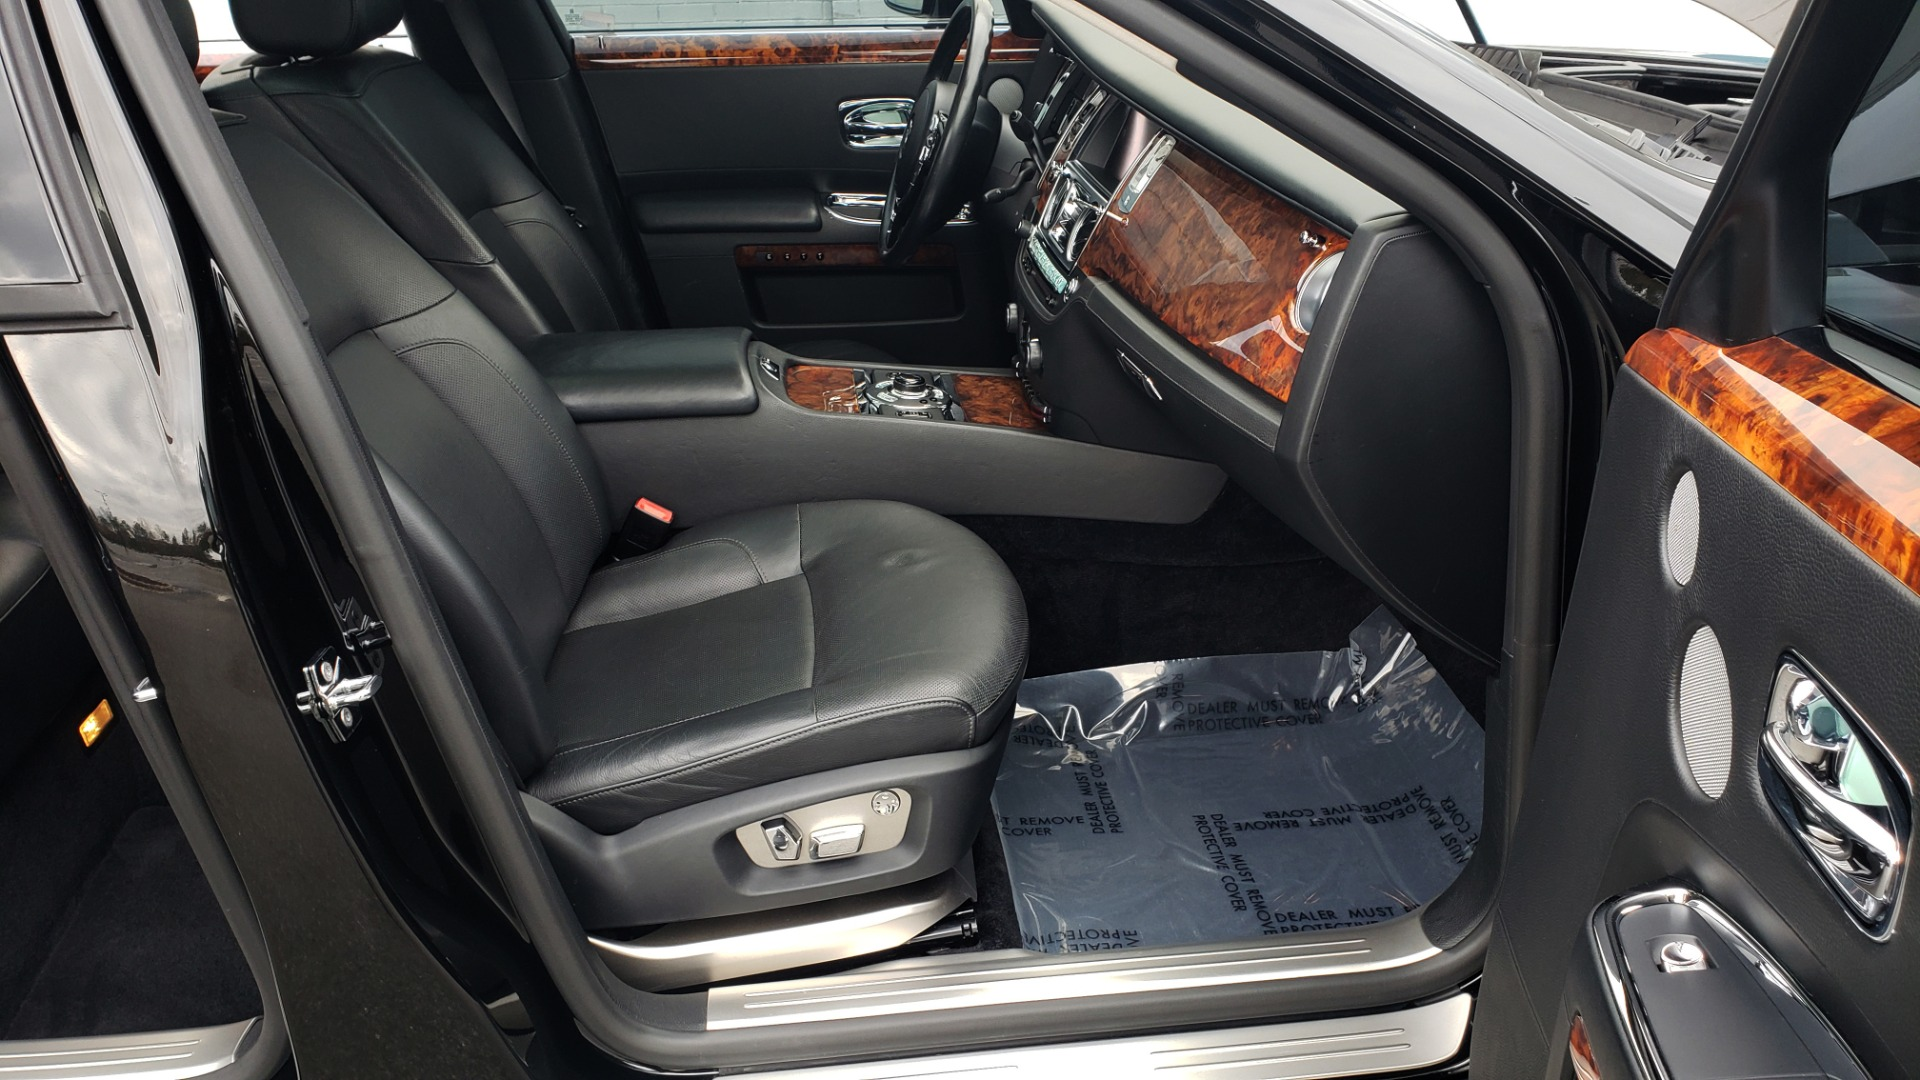 Used 2010 Rolls-Royce GHOST 6.6L TURBO V12 (563HP) / NAV / SUNROOF / SUICIDE DOORS for sale $89,000 at Formula Imports in Charlotte NC 28227 35